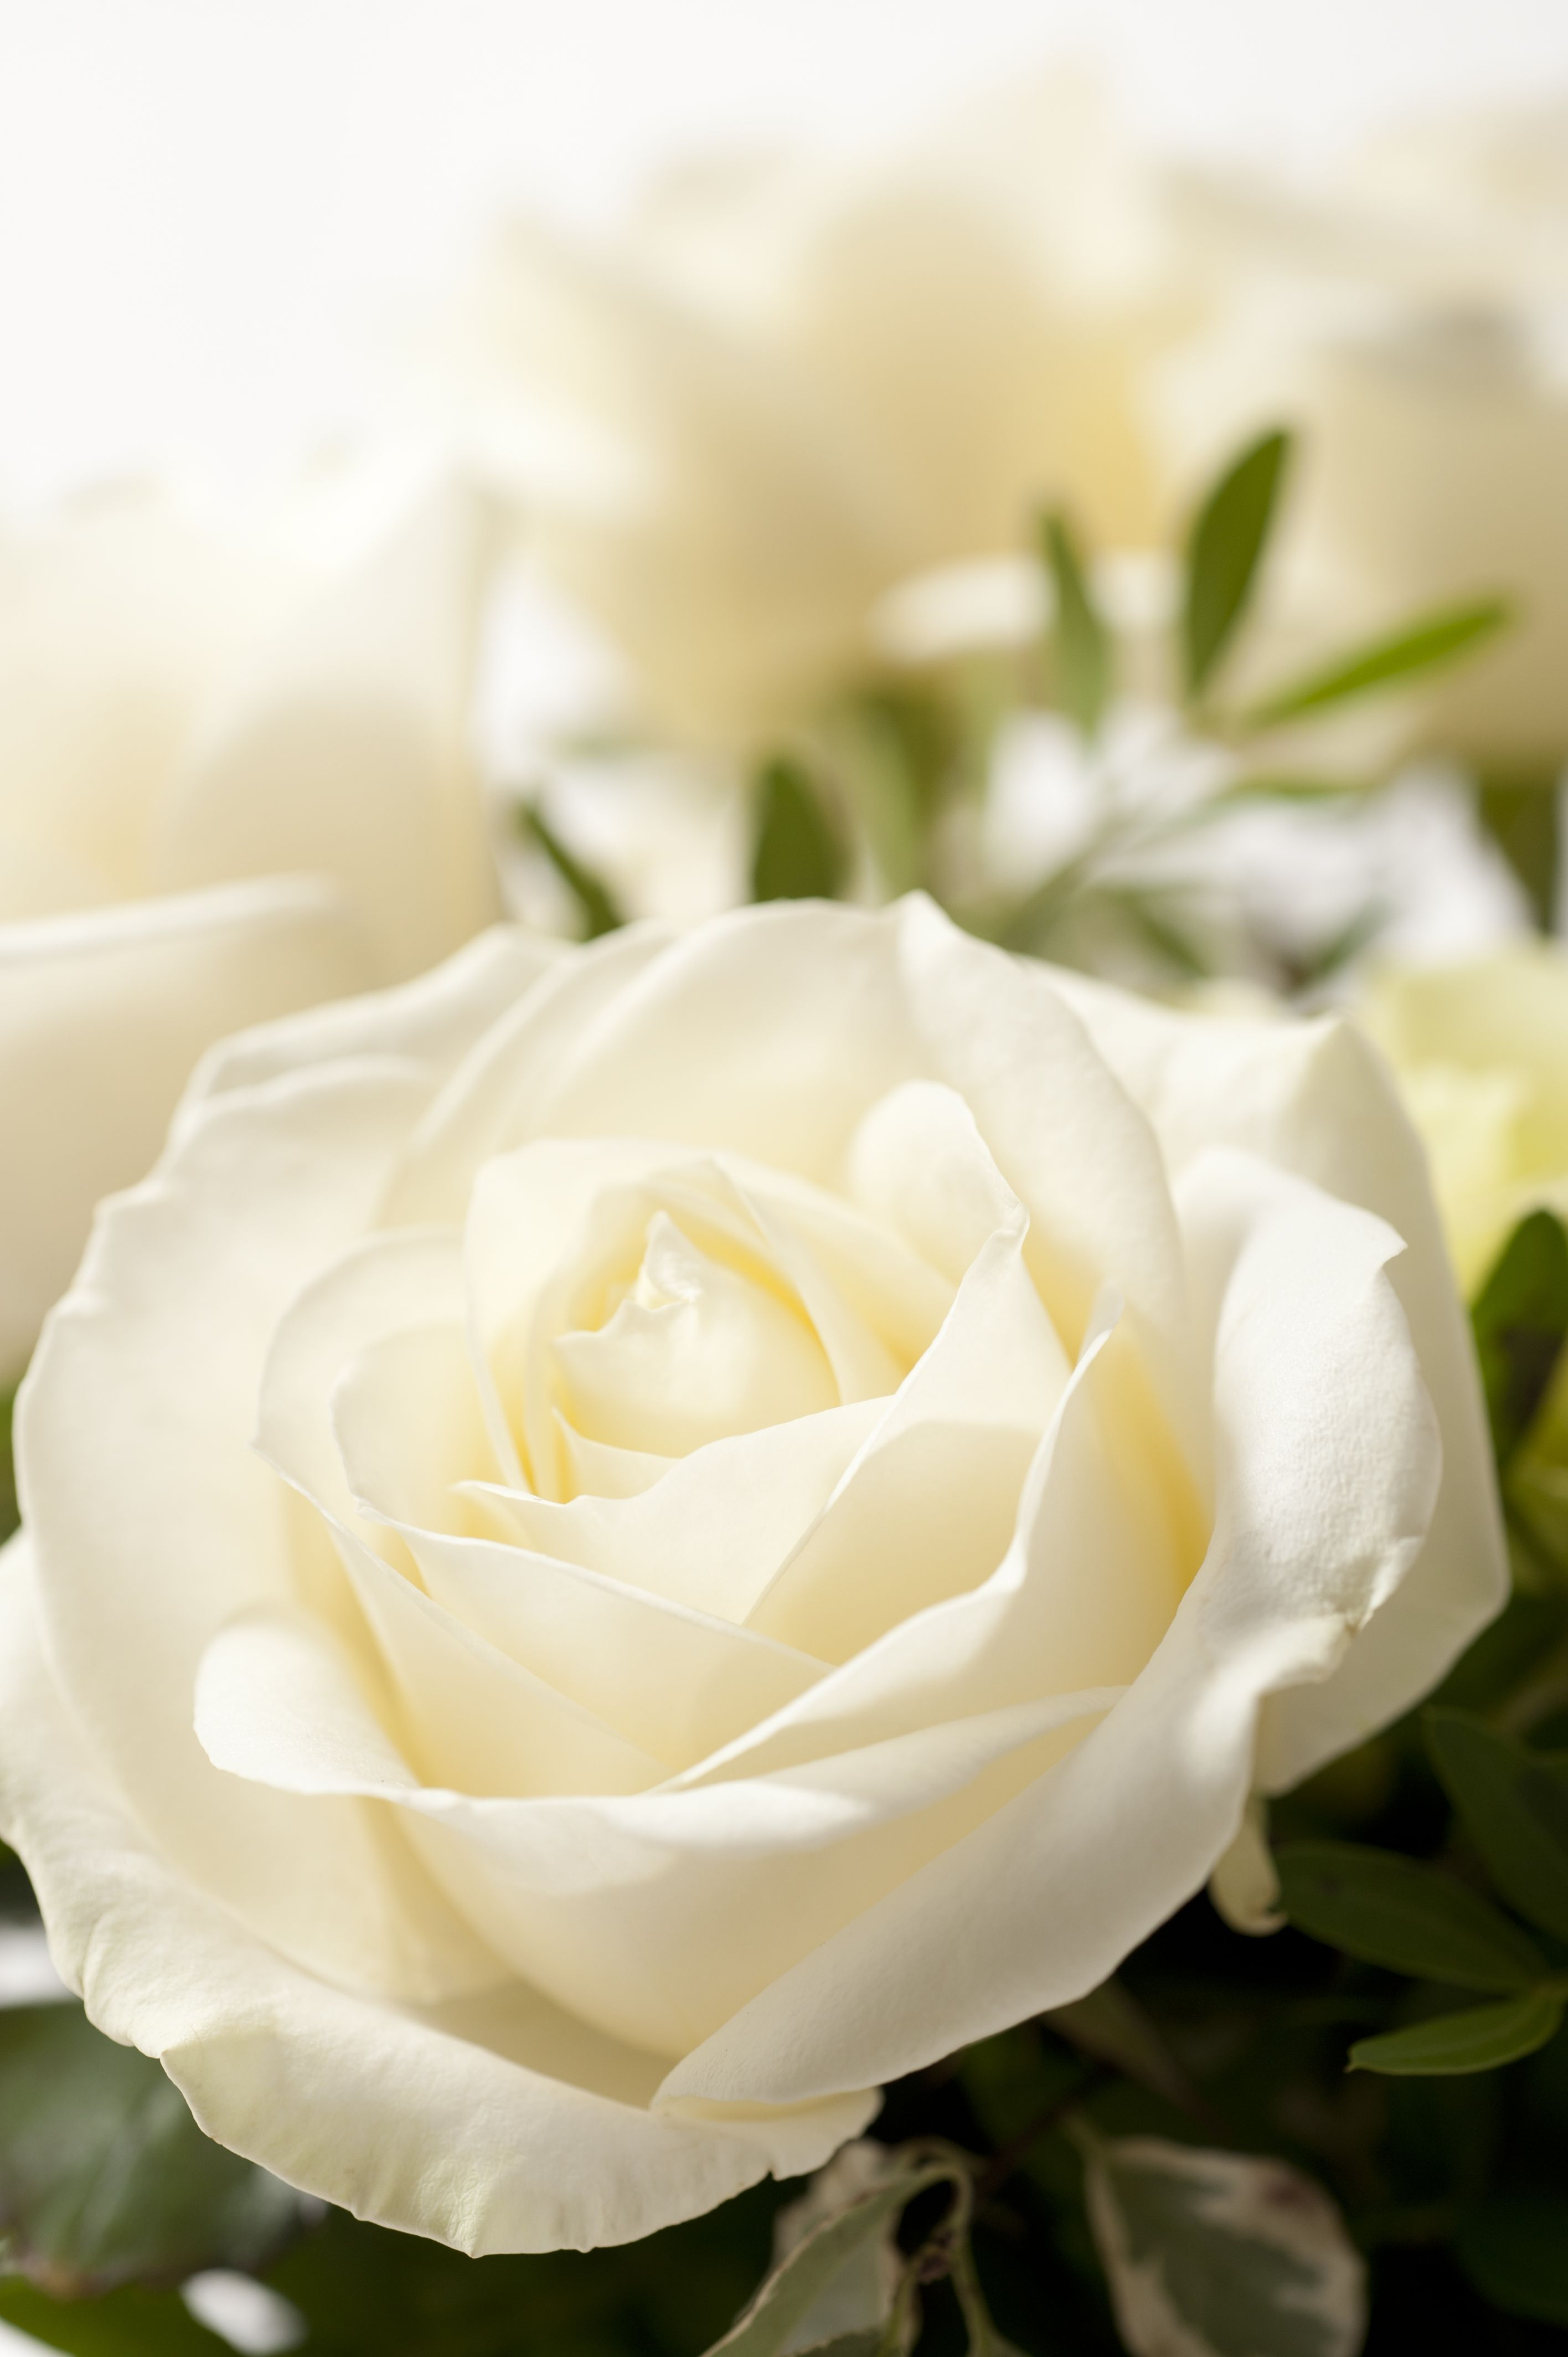 Rose Blanche Bouquet Cocon Interflora France Roses